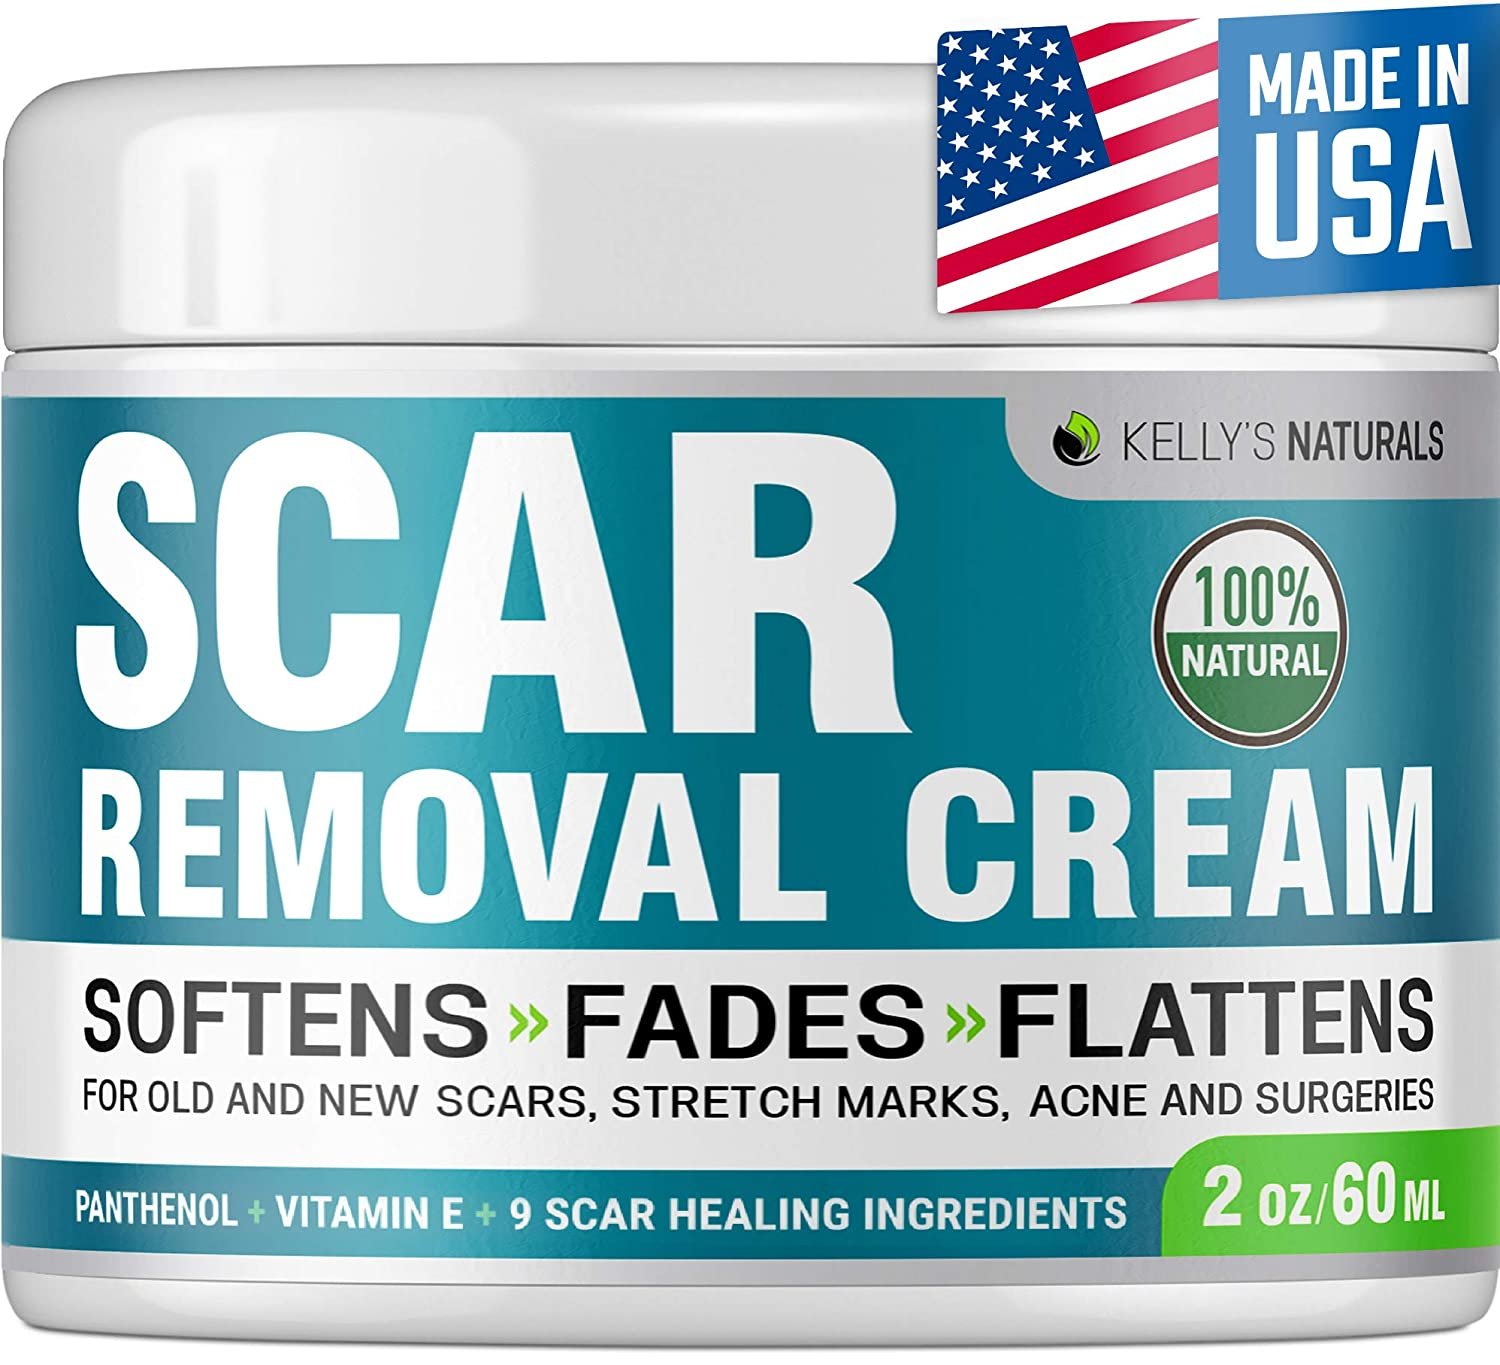 Scar Removal Cream - Effective Stretch Mark Removal - Natural Skin Repair - Acne Scar Remover Cream